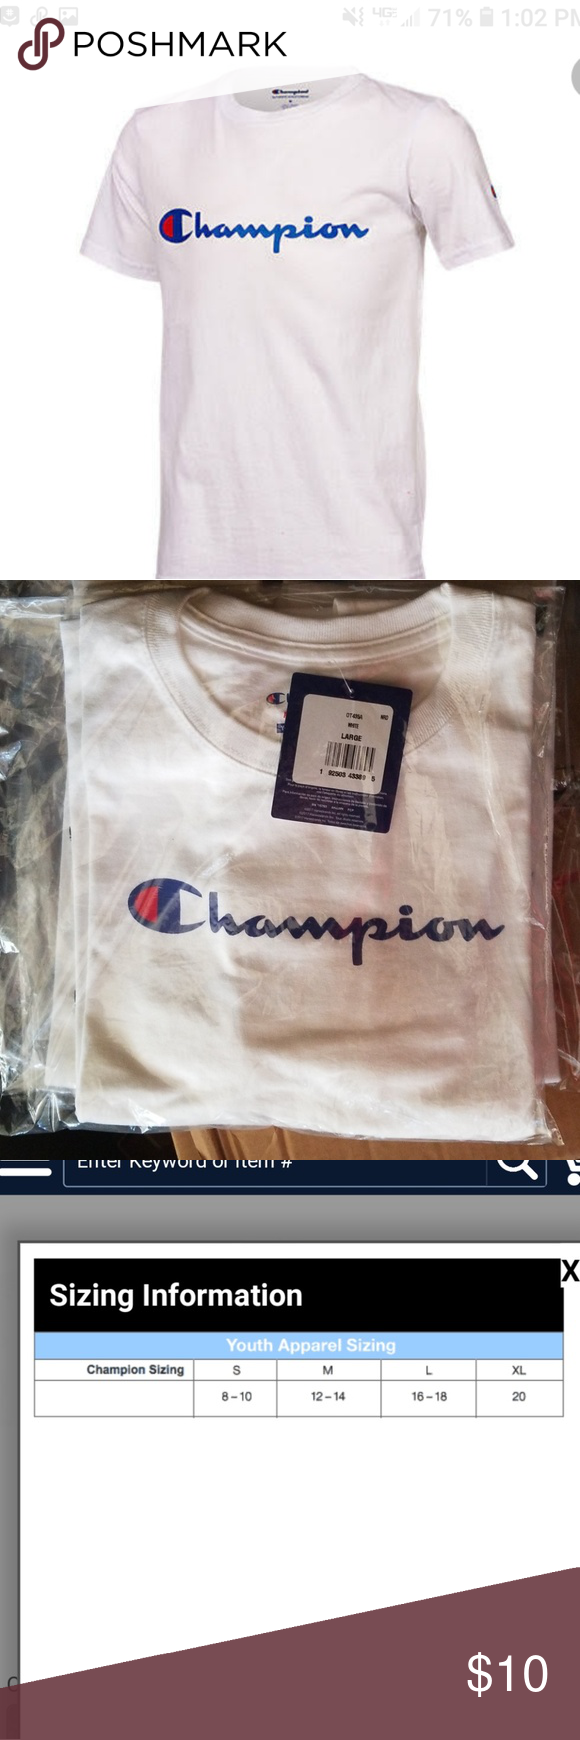 2 For 15 Champion Youth Tee Uni Size Please See Chart